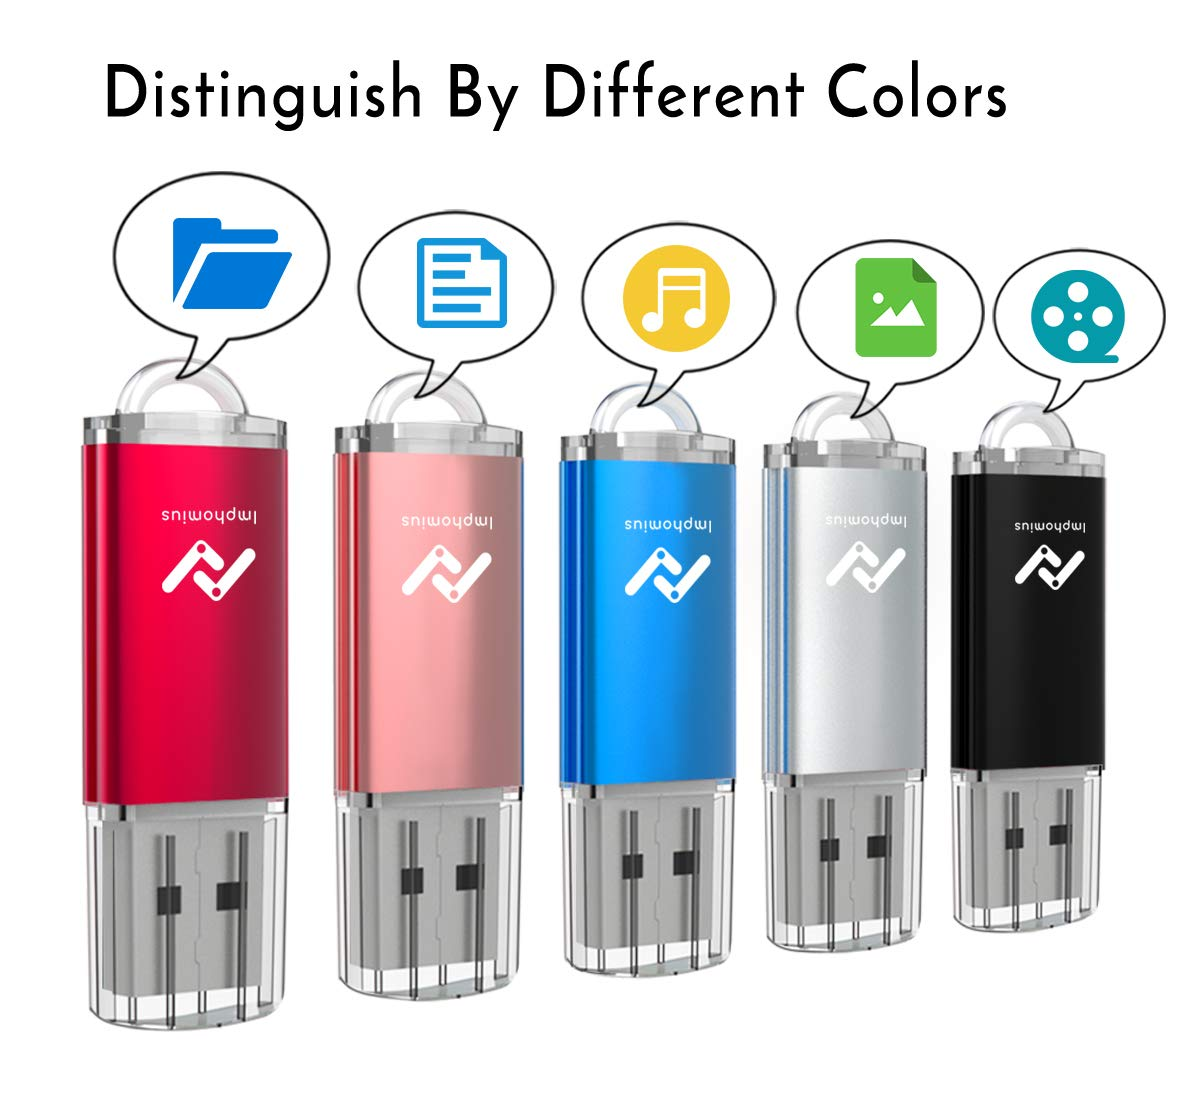 Flash Drives 16GB 10 Pack in Bulk USB 2.0 Thumb Drive 16 GB Jump Drive Memory Drive Zip Drive with LED Light for Storage by Imphomius 10Pack,Multicoloured